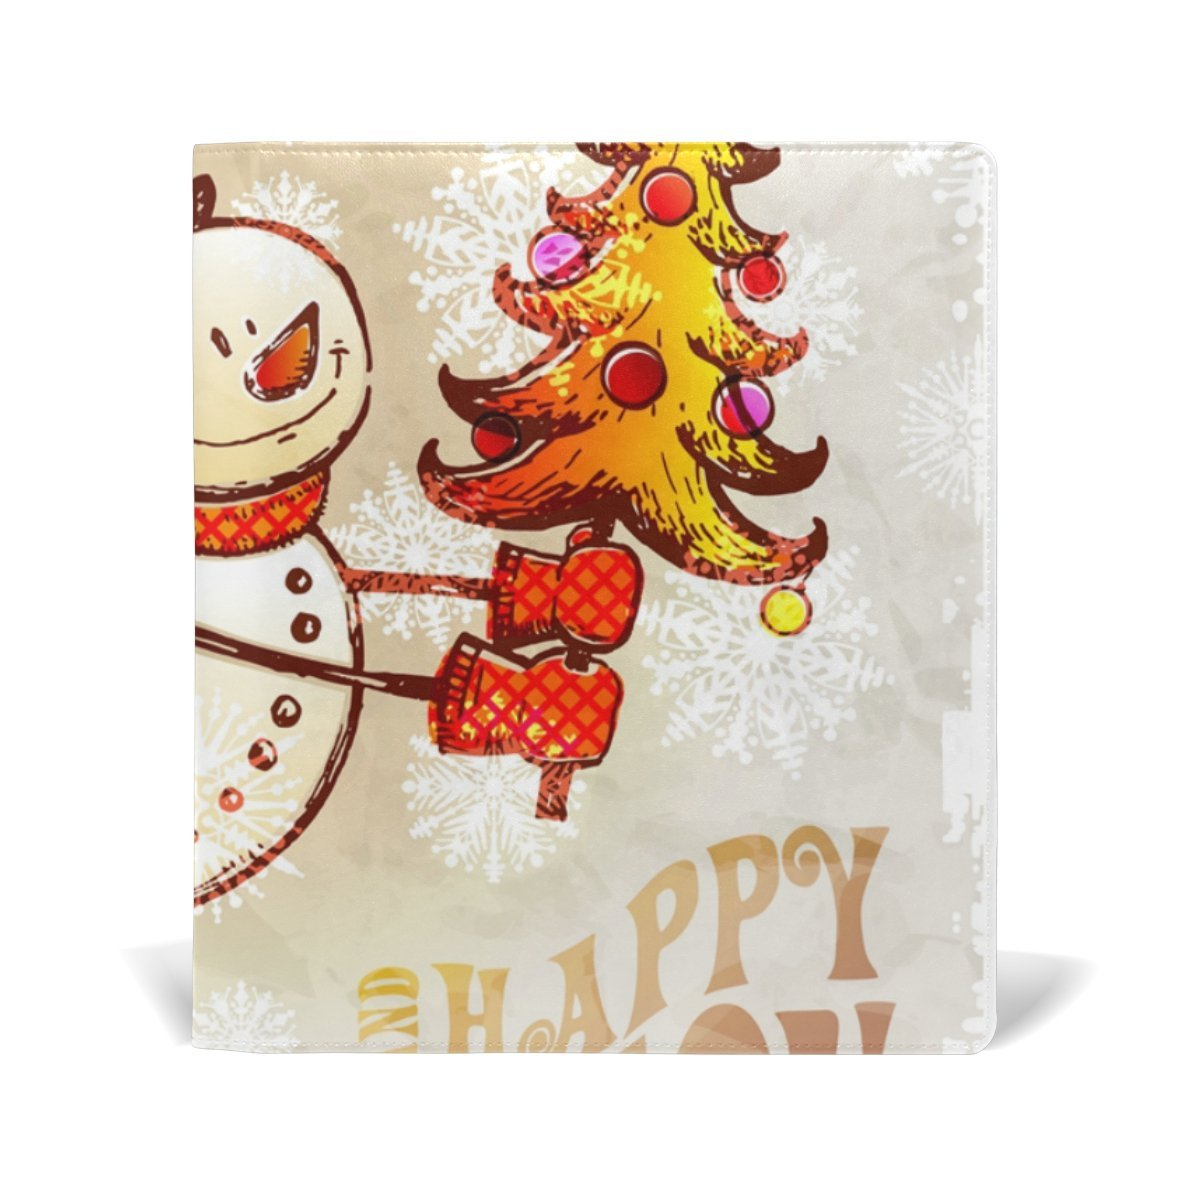 Sunlome Merry Christmas Snowman With Tree Pattern Stretchable PU Leather Book Cover 9 x 11 Inches Fits for School Hardcover Textbooks